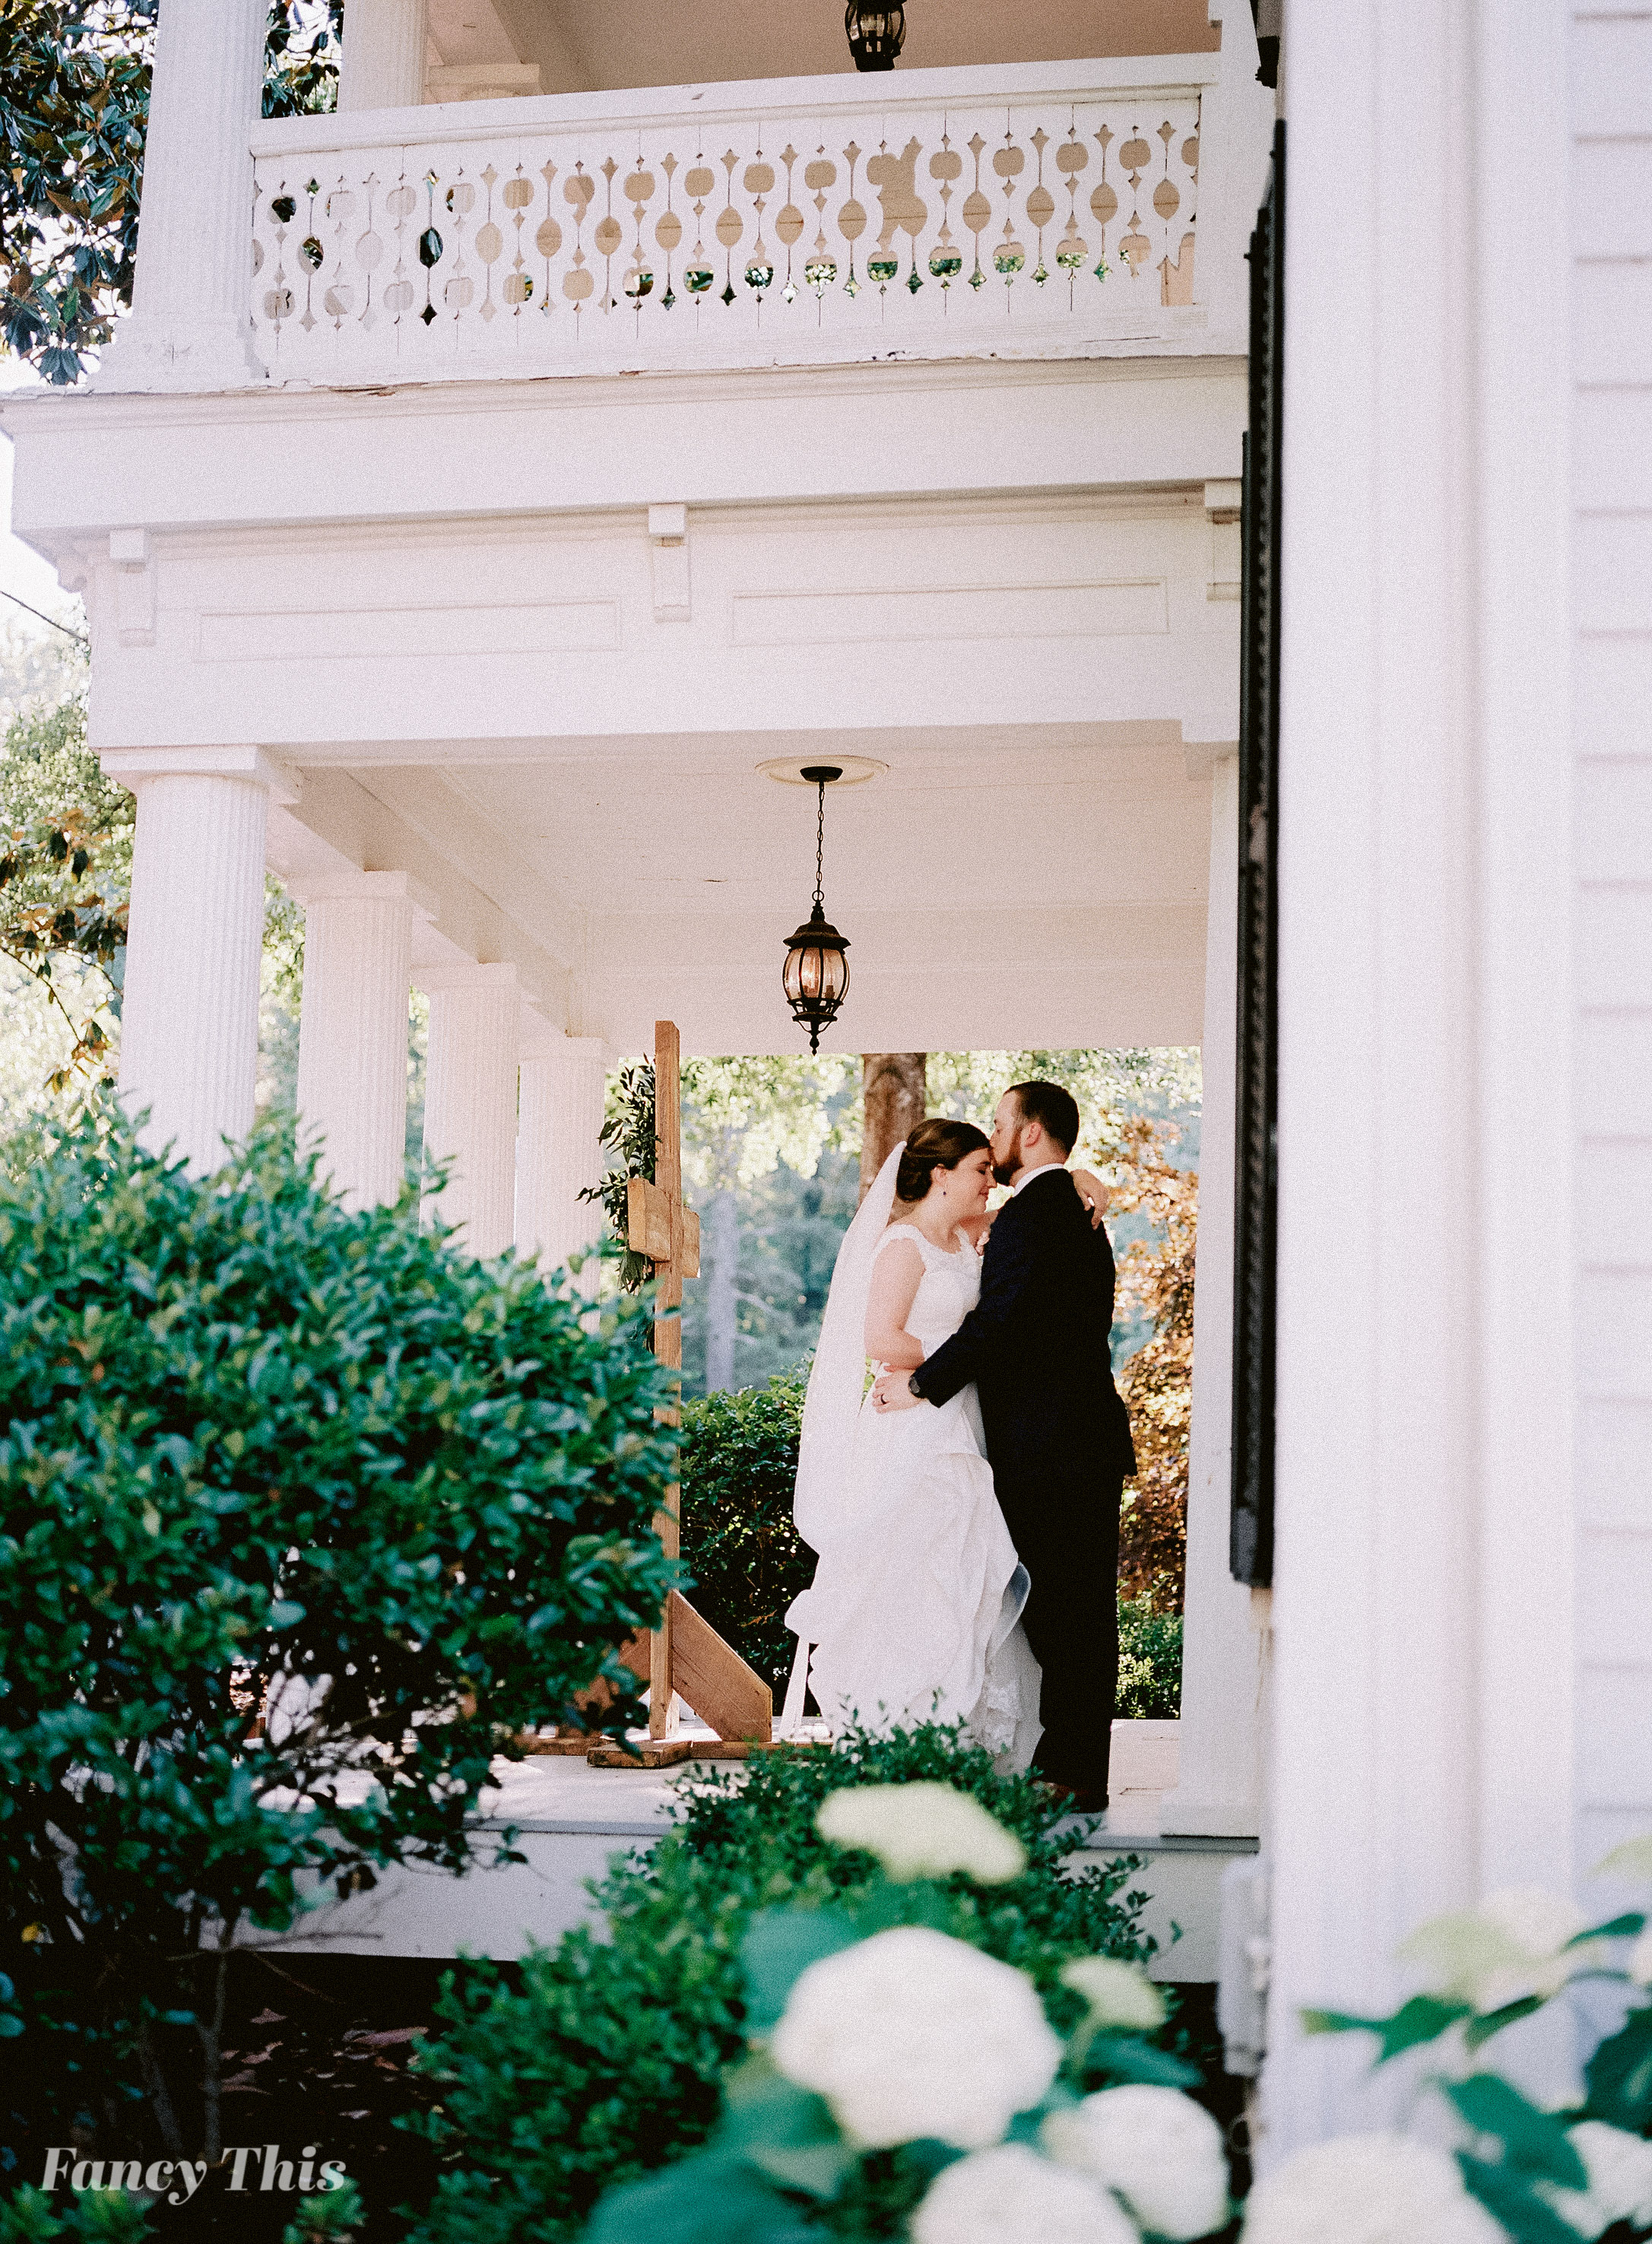 themimshousewedding_summerweddinginhollysprings_fancythis-414.jpg